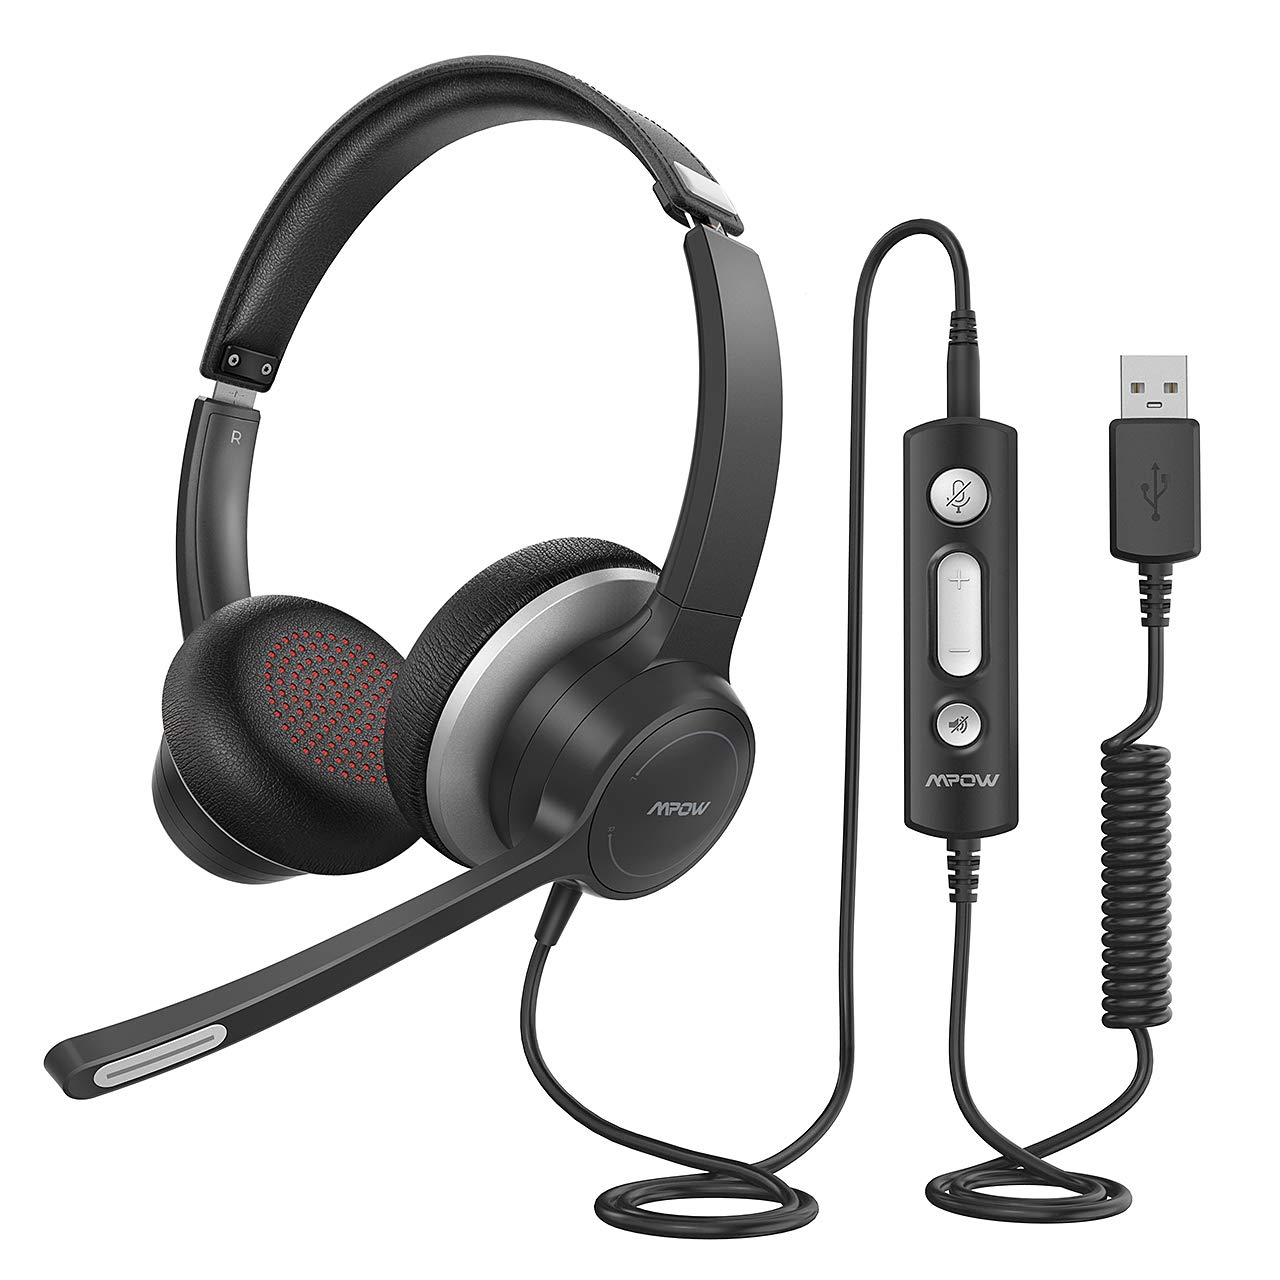 Mpow Microphone Comfort fit Computer Headphone